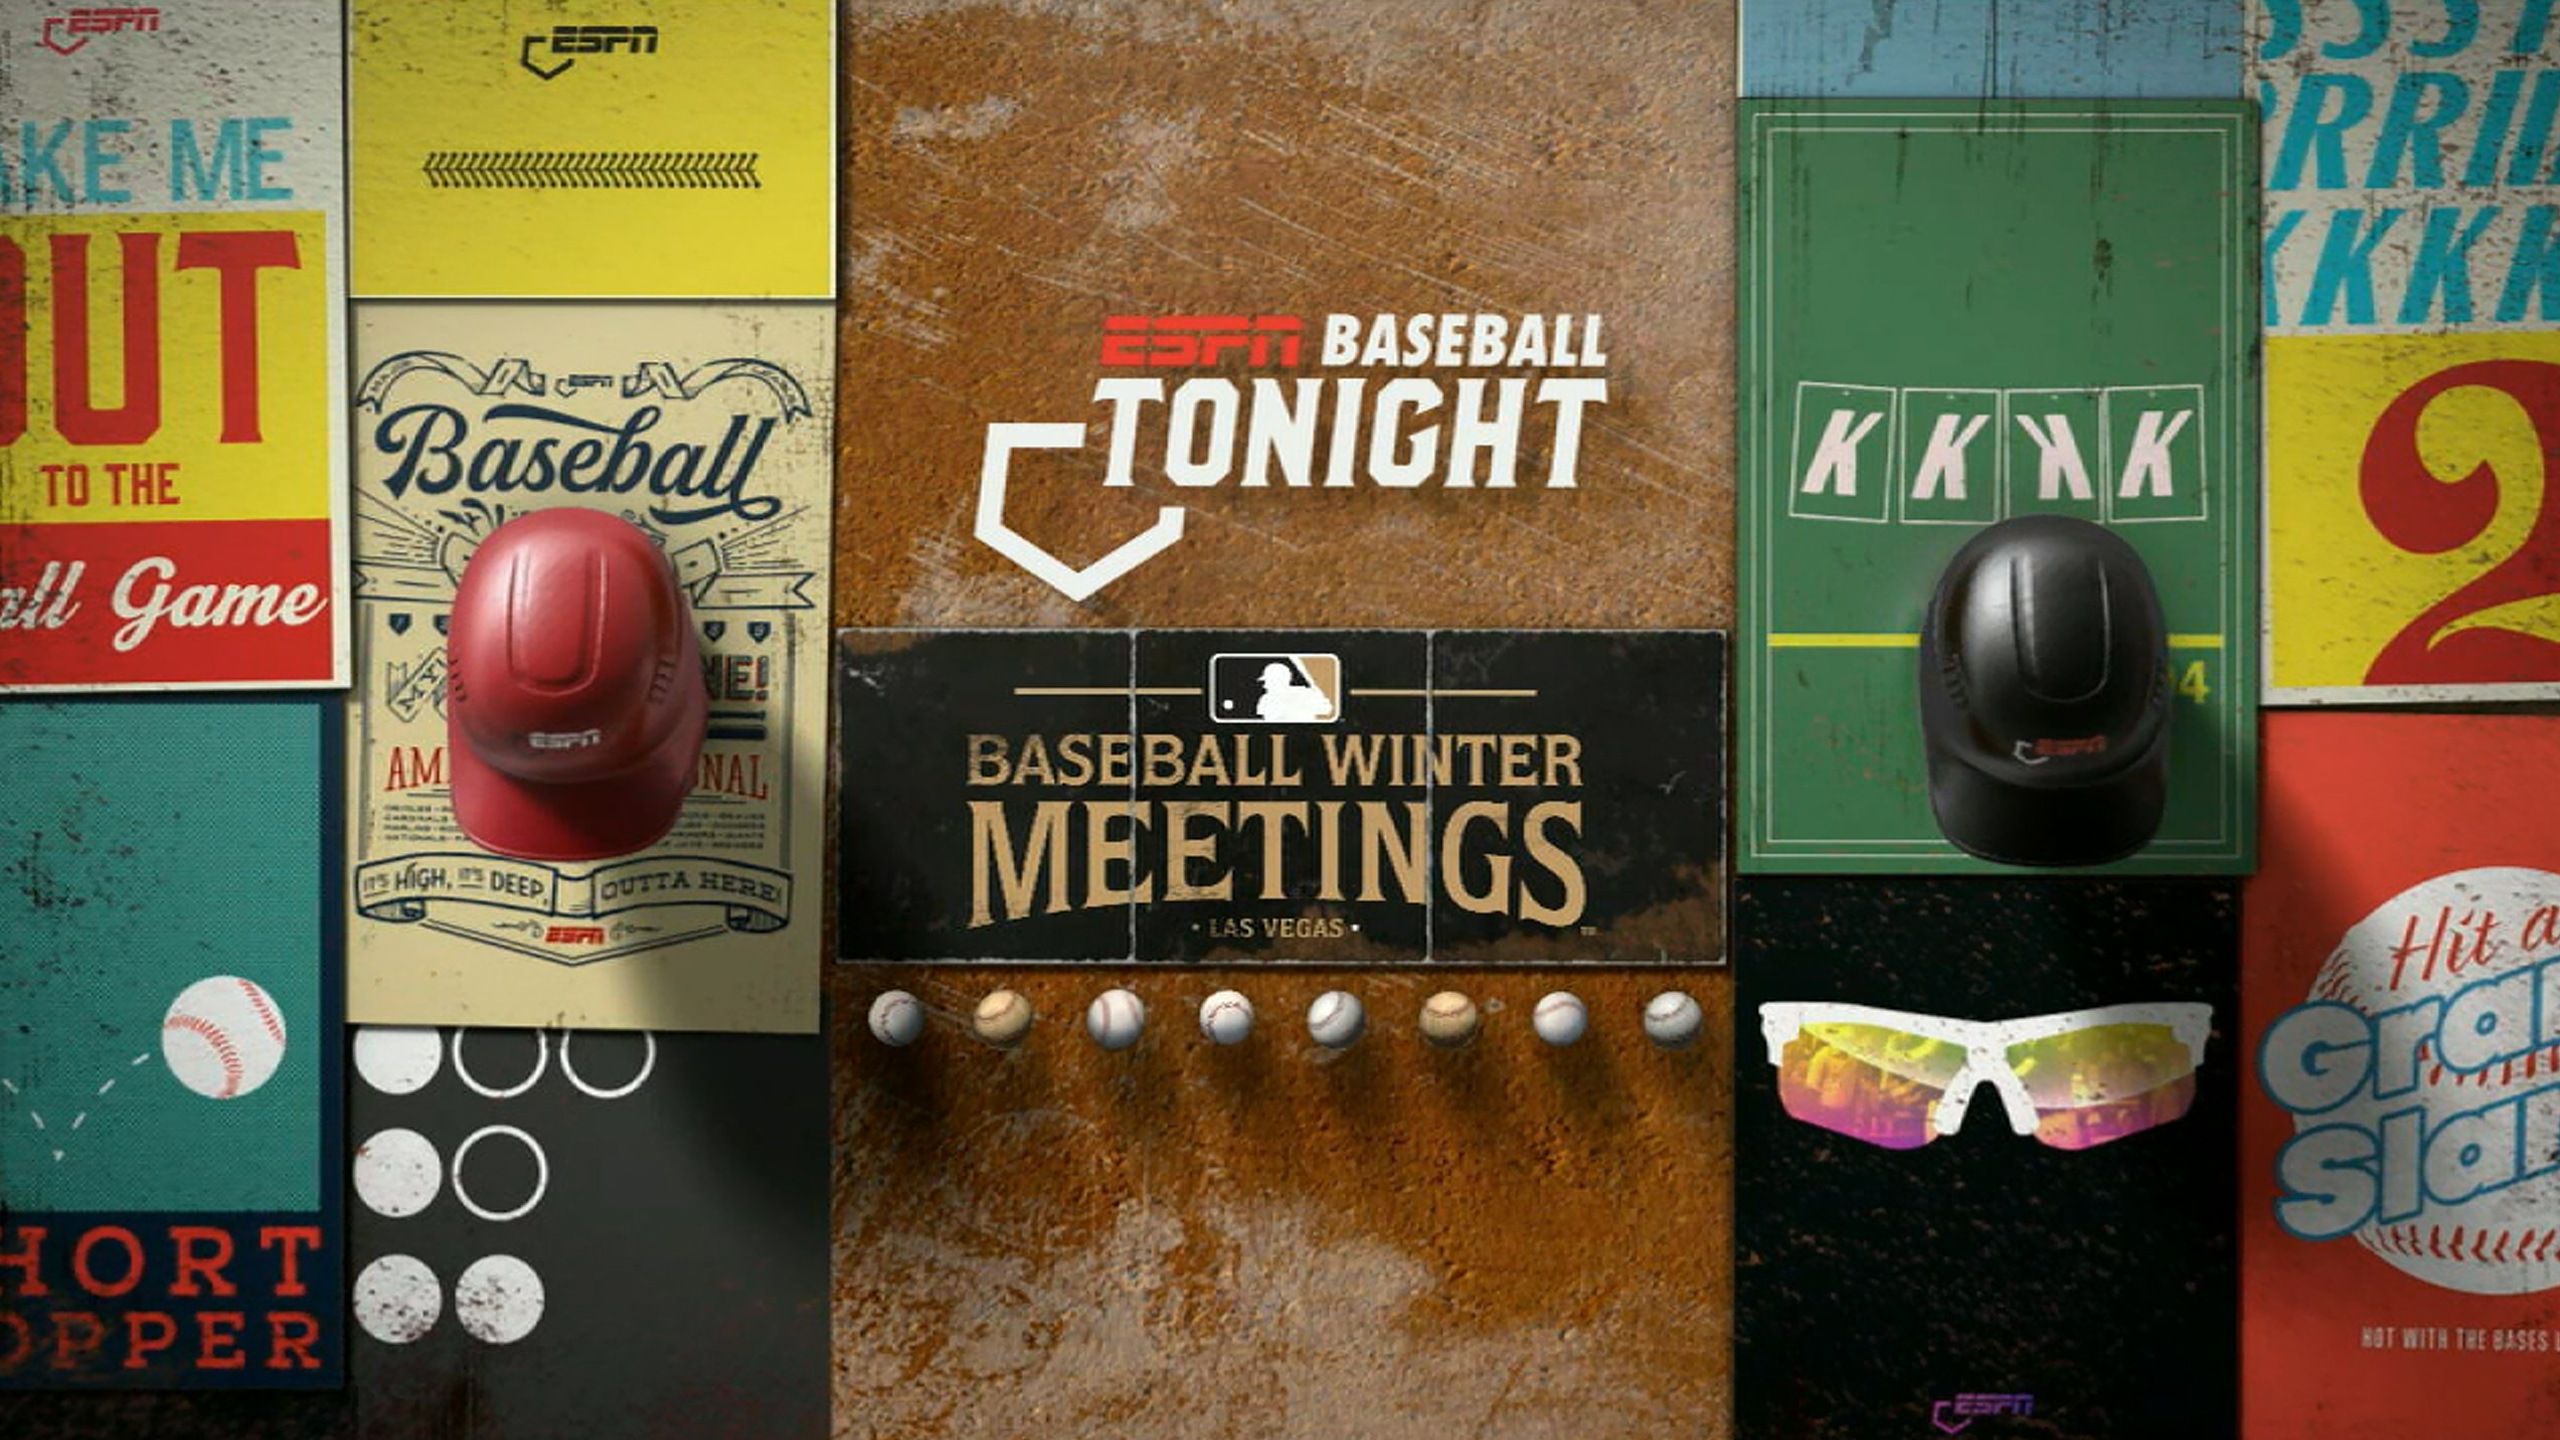 Baseball Tonight: Winter Meetings